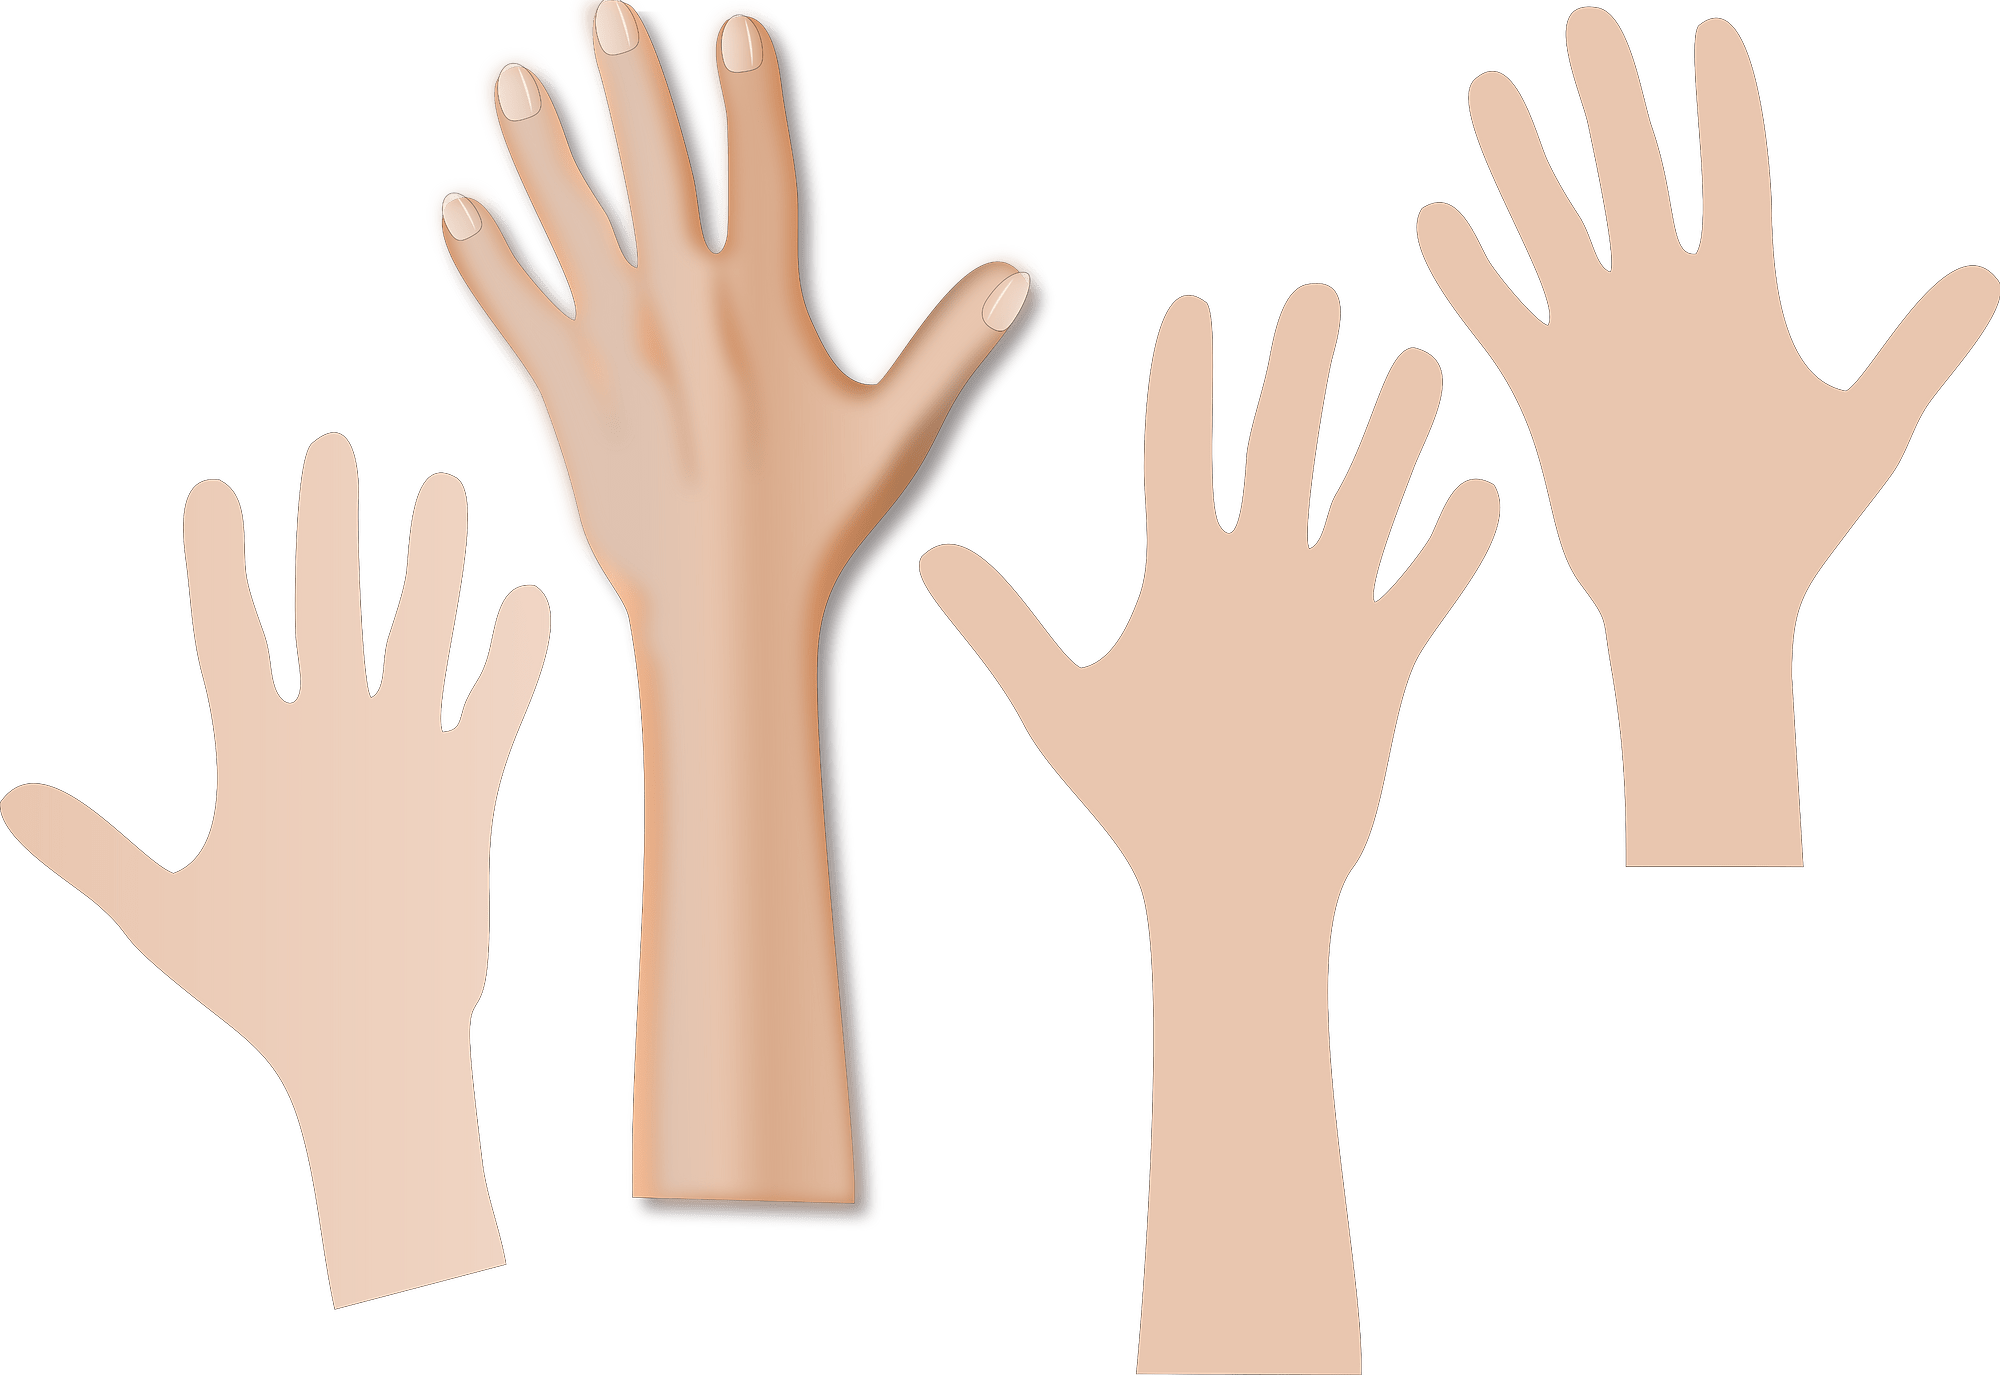 Four Hands Reaching Up Transparent Png Stickpng Enjoy the videos and music you love, upload original content, and share it all with friends, family, and the world on youtube. stickpng